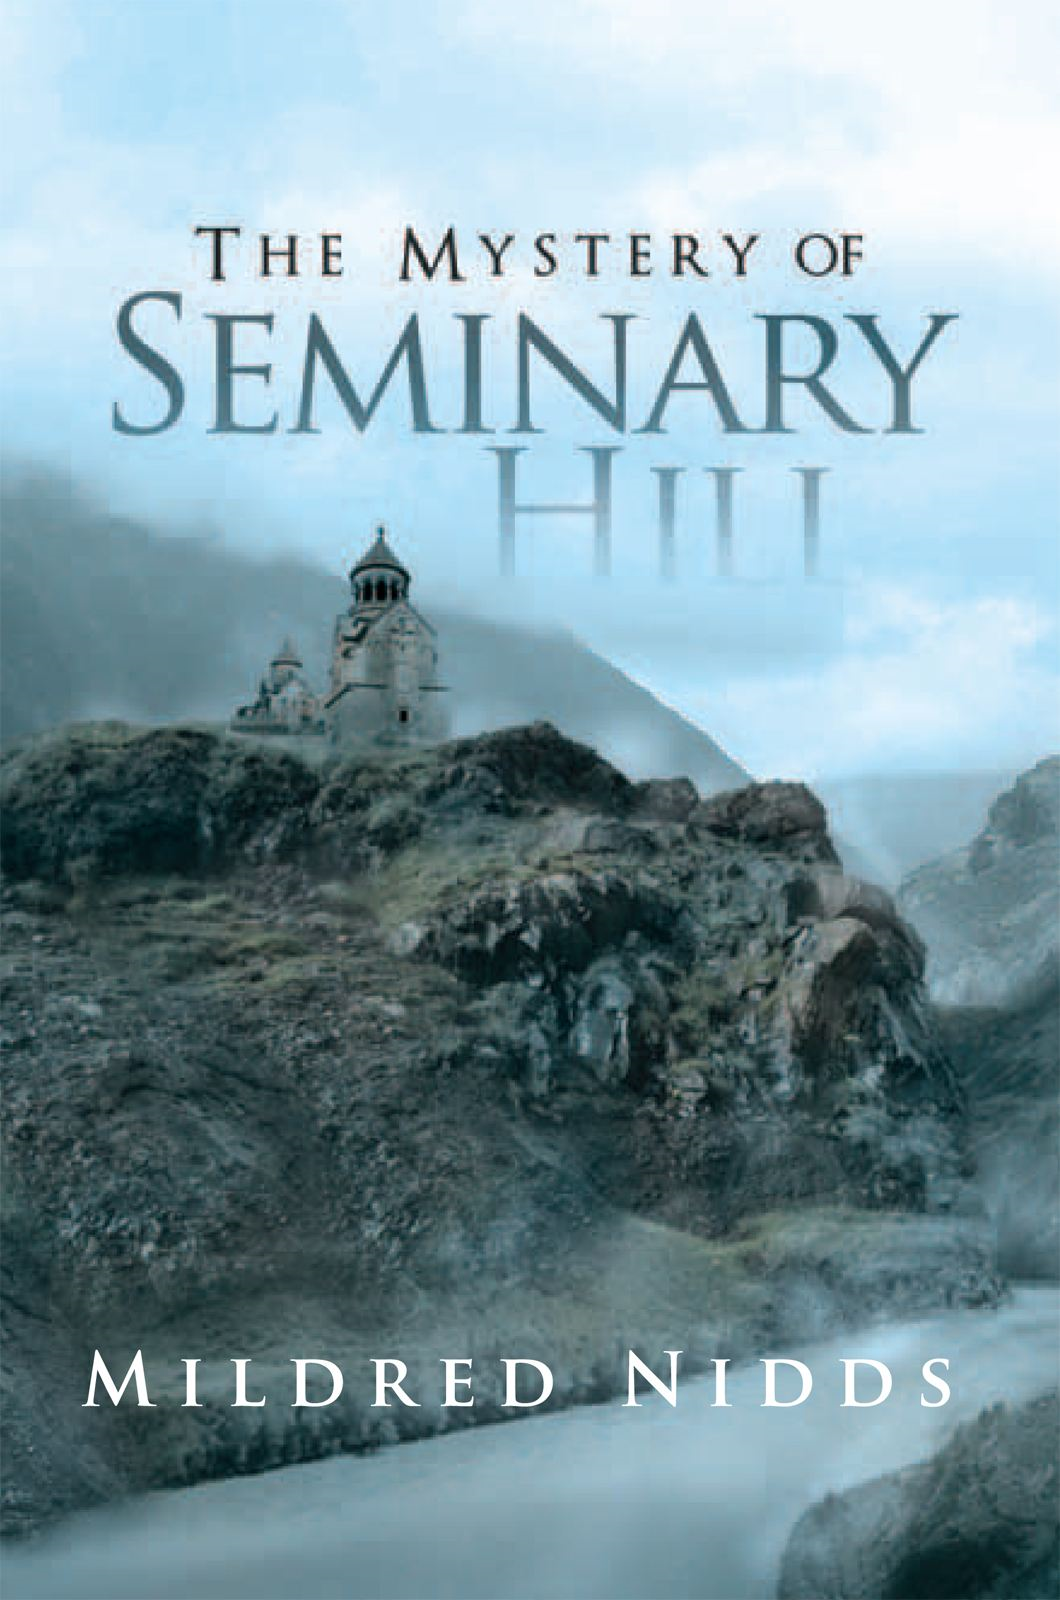 The Mystery of Seminary  Hill By: Mildred Nidds